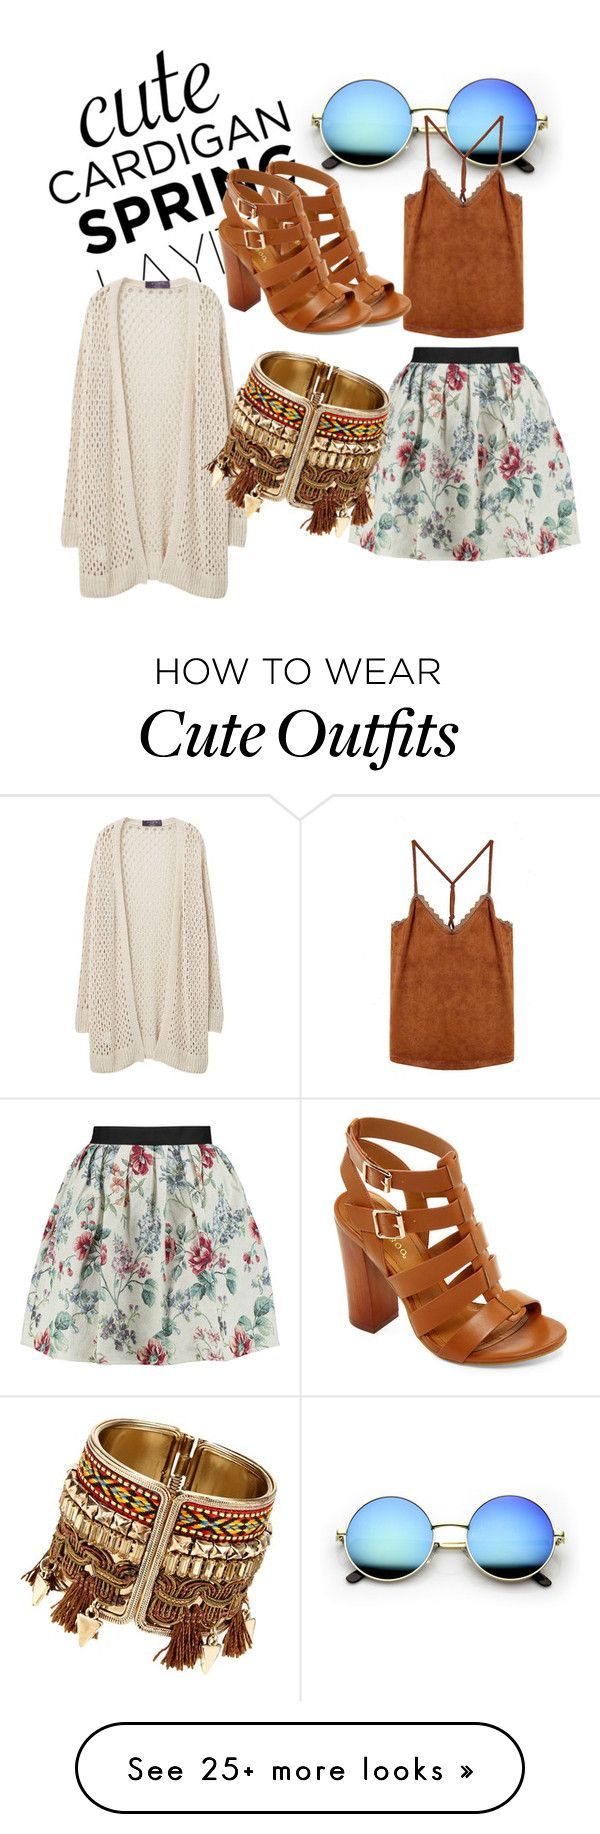 """""""Spring Layers Outfit+Cardigan"""" by fallinapanic on Polyvore featuring Raoul, Violeta by Mango, Bamboo, cutecardigan and springlayers"""